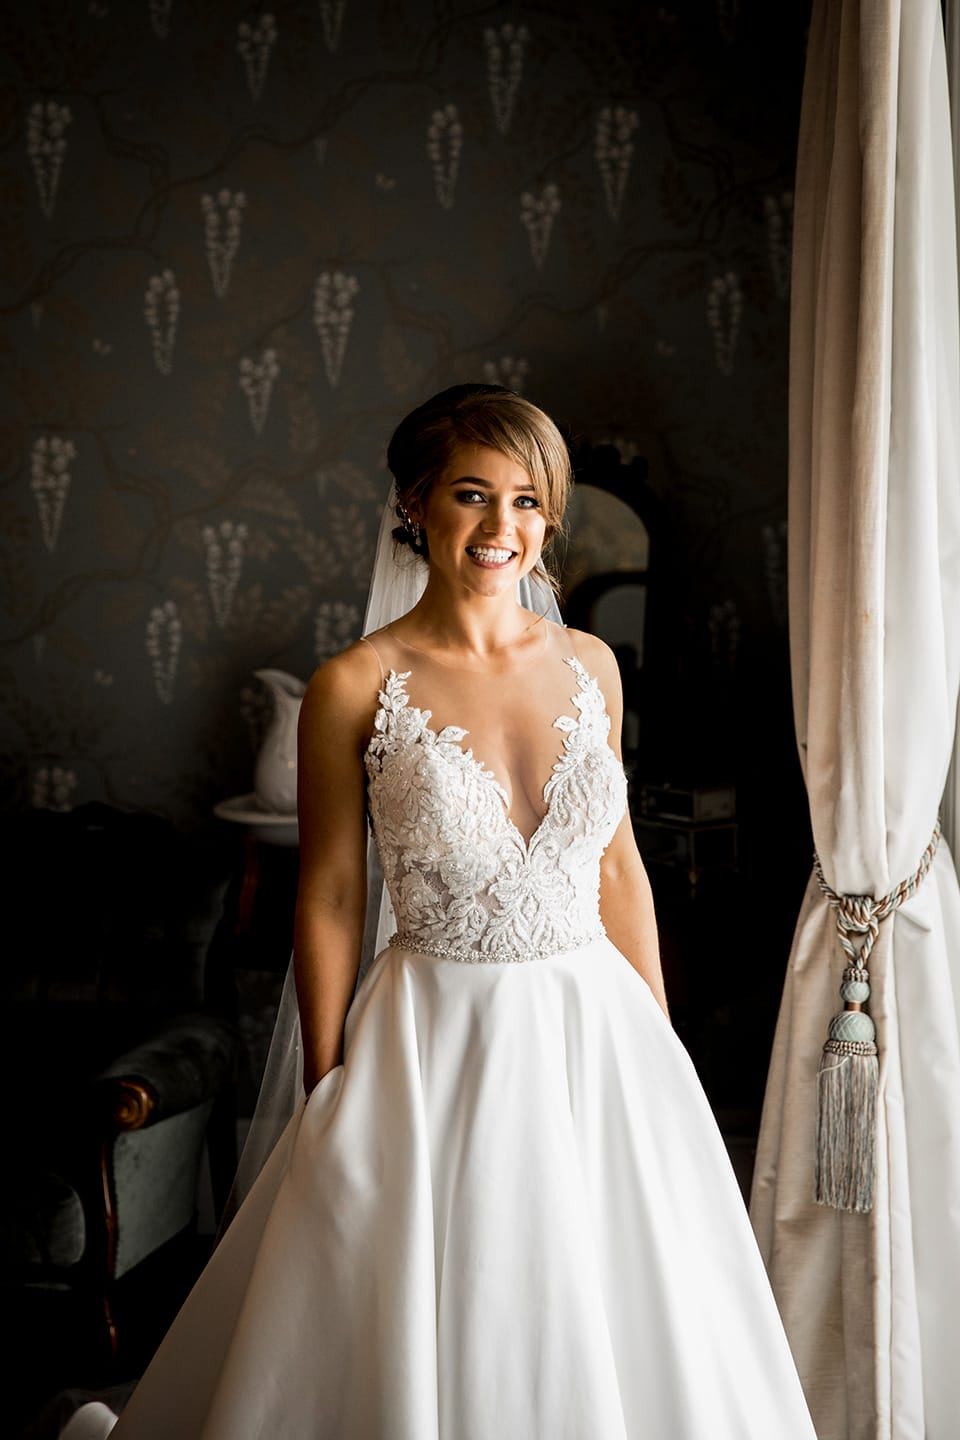 Darver Castle Bride, April 2019, Niall Coogan Photography